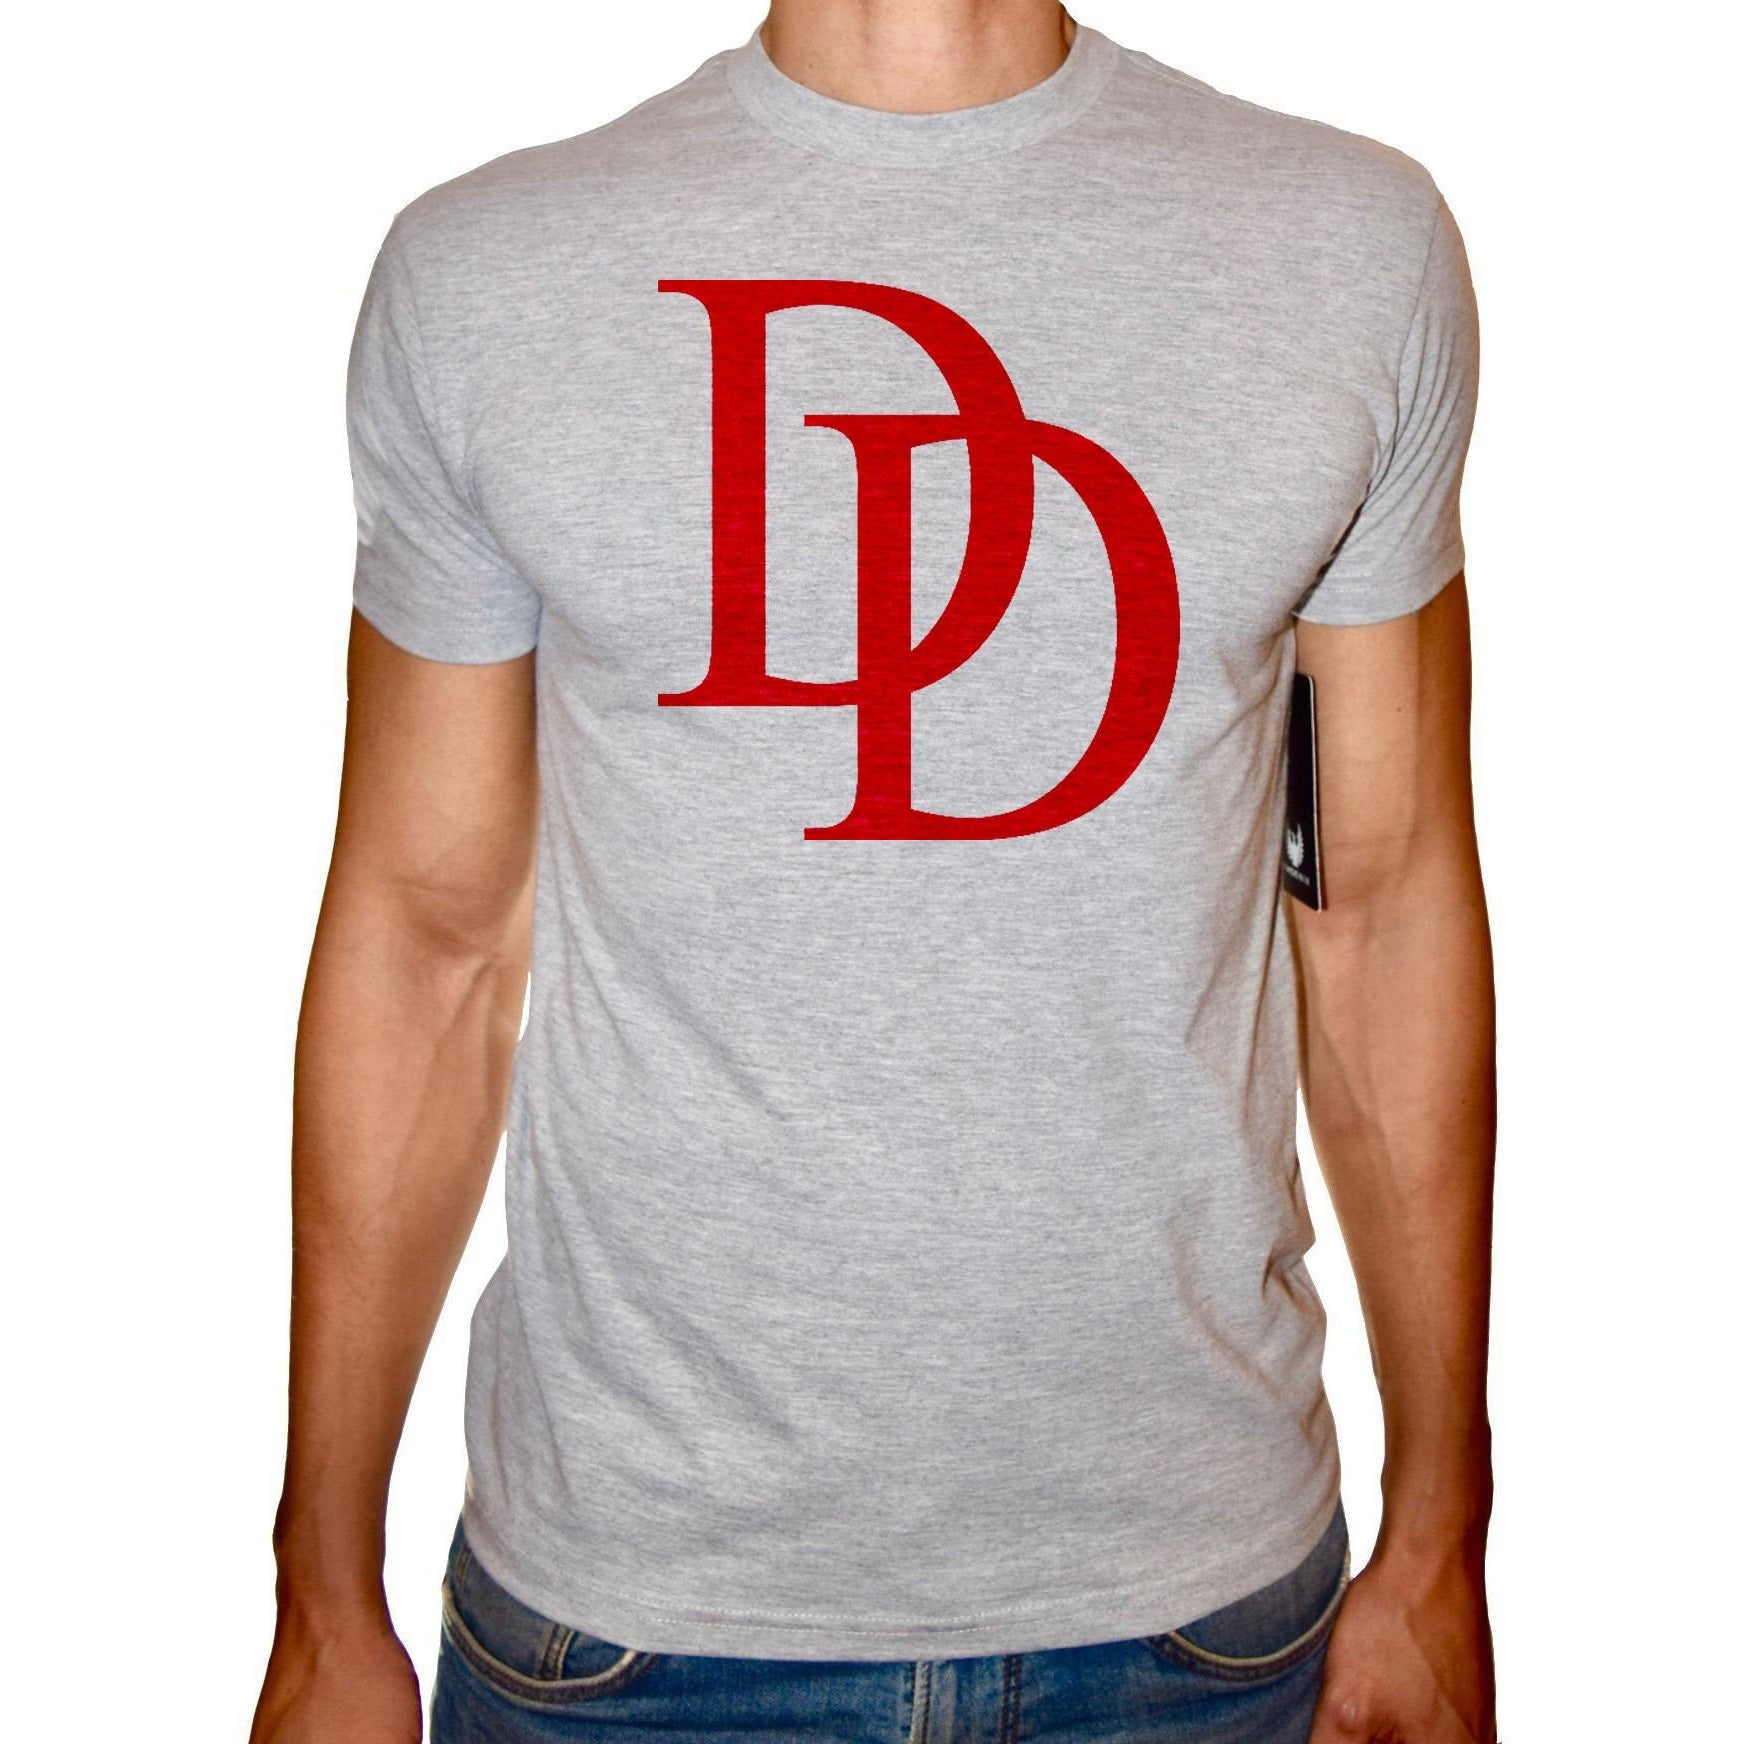 Phoenix GREY Round Neck Printed T-Shirt Men (Daredevil)